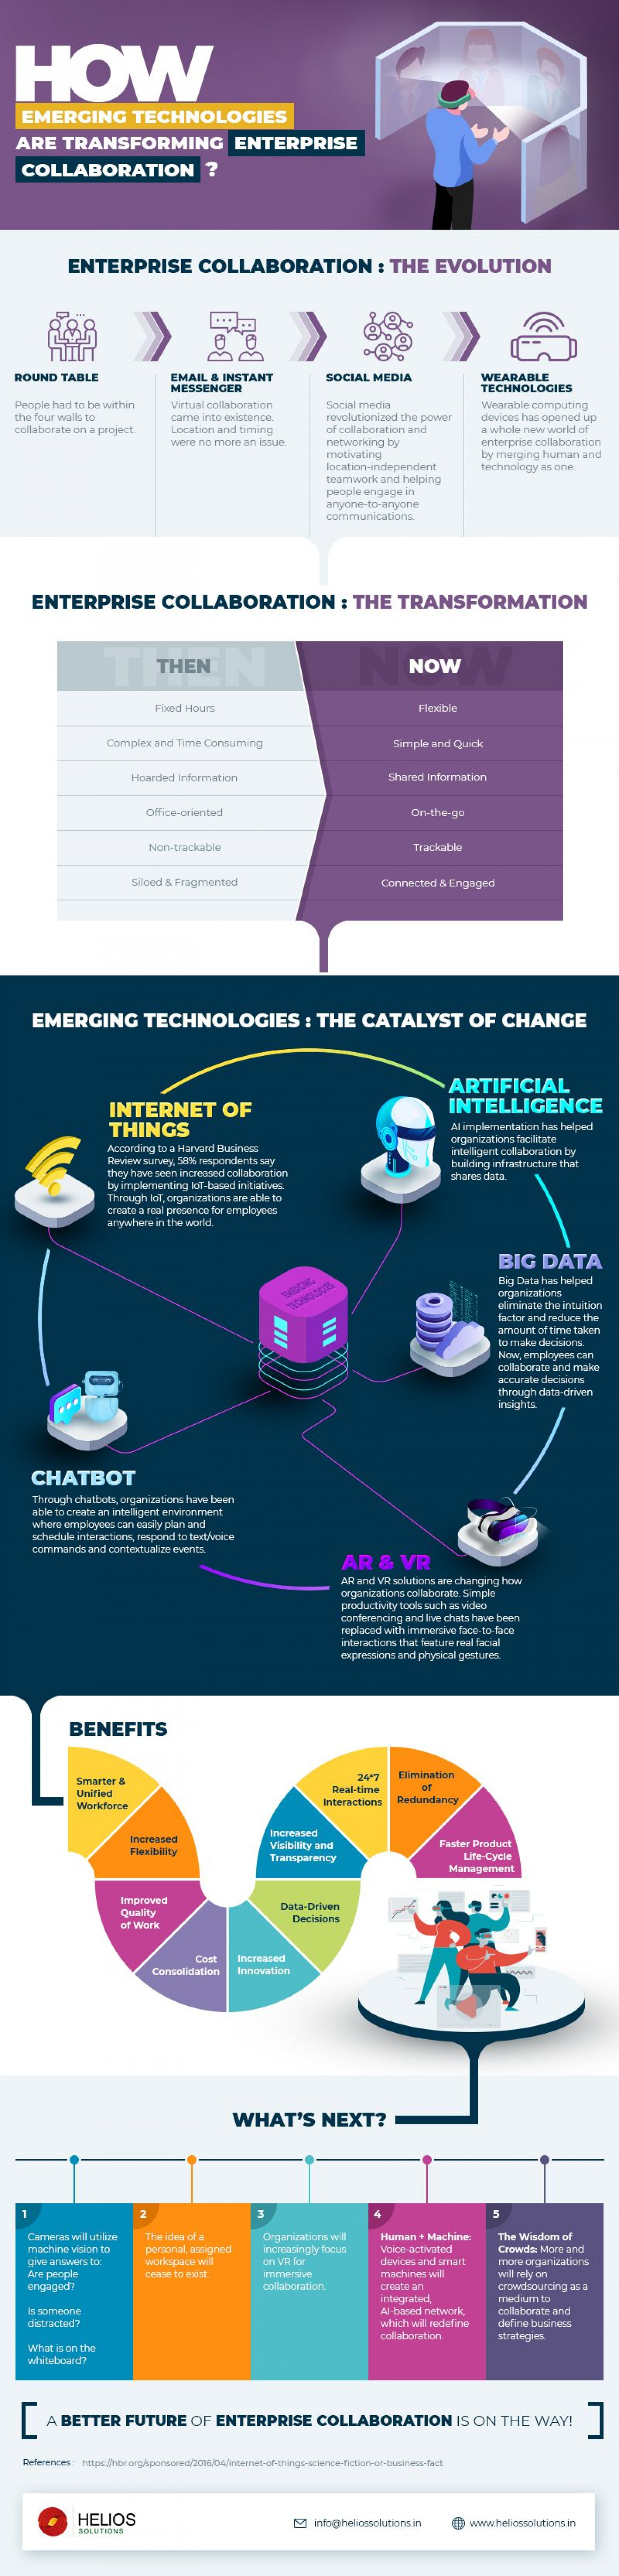 How Emerging Technologies are Transforming Enterprise Collaboration? Infographic